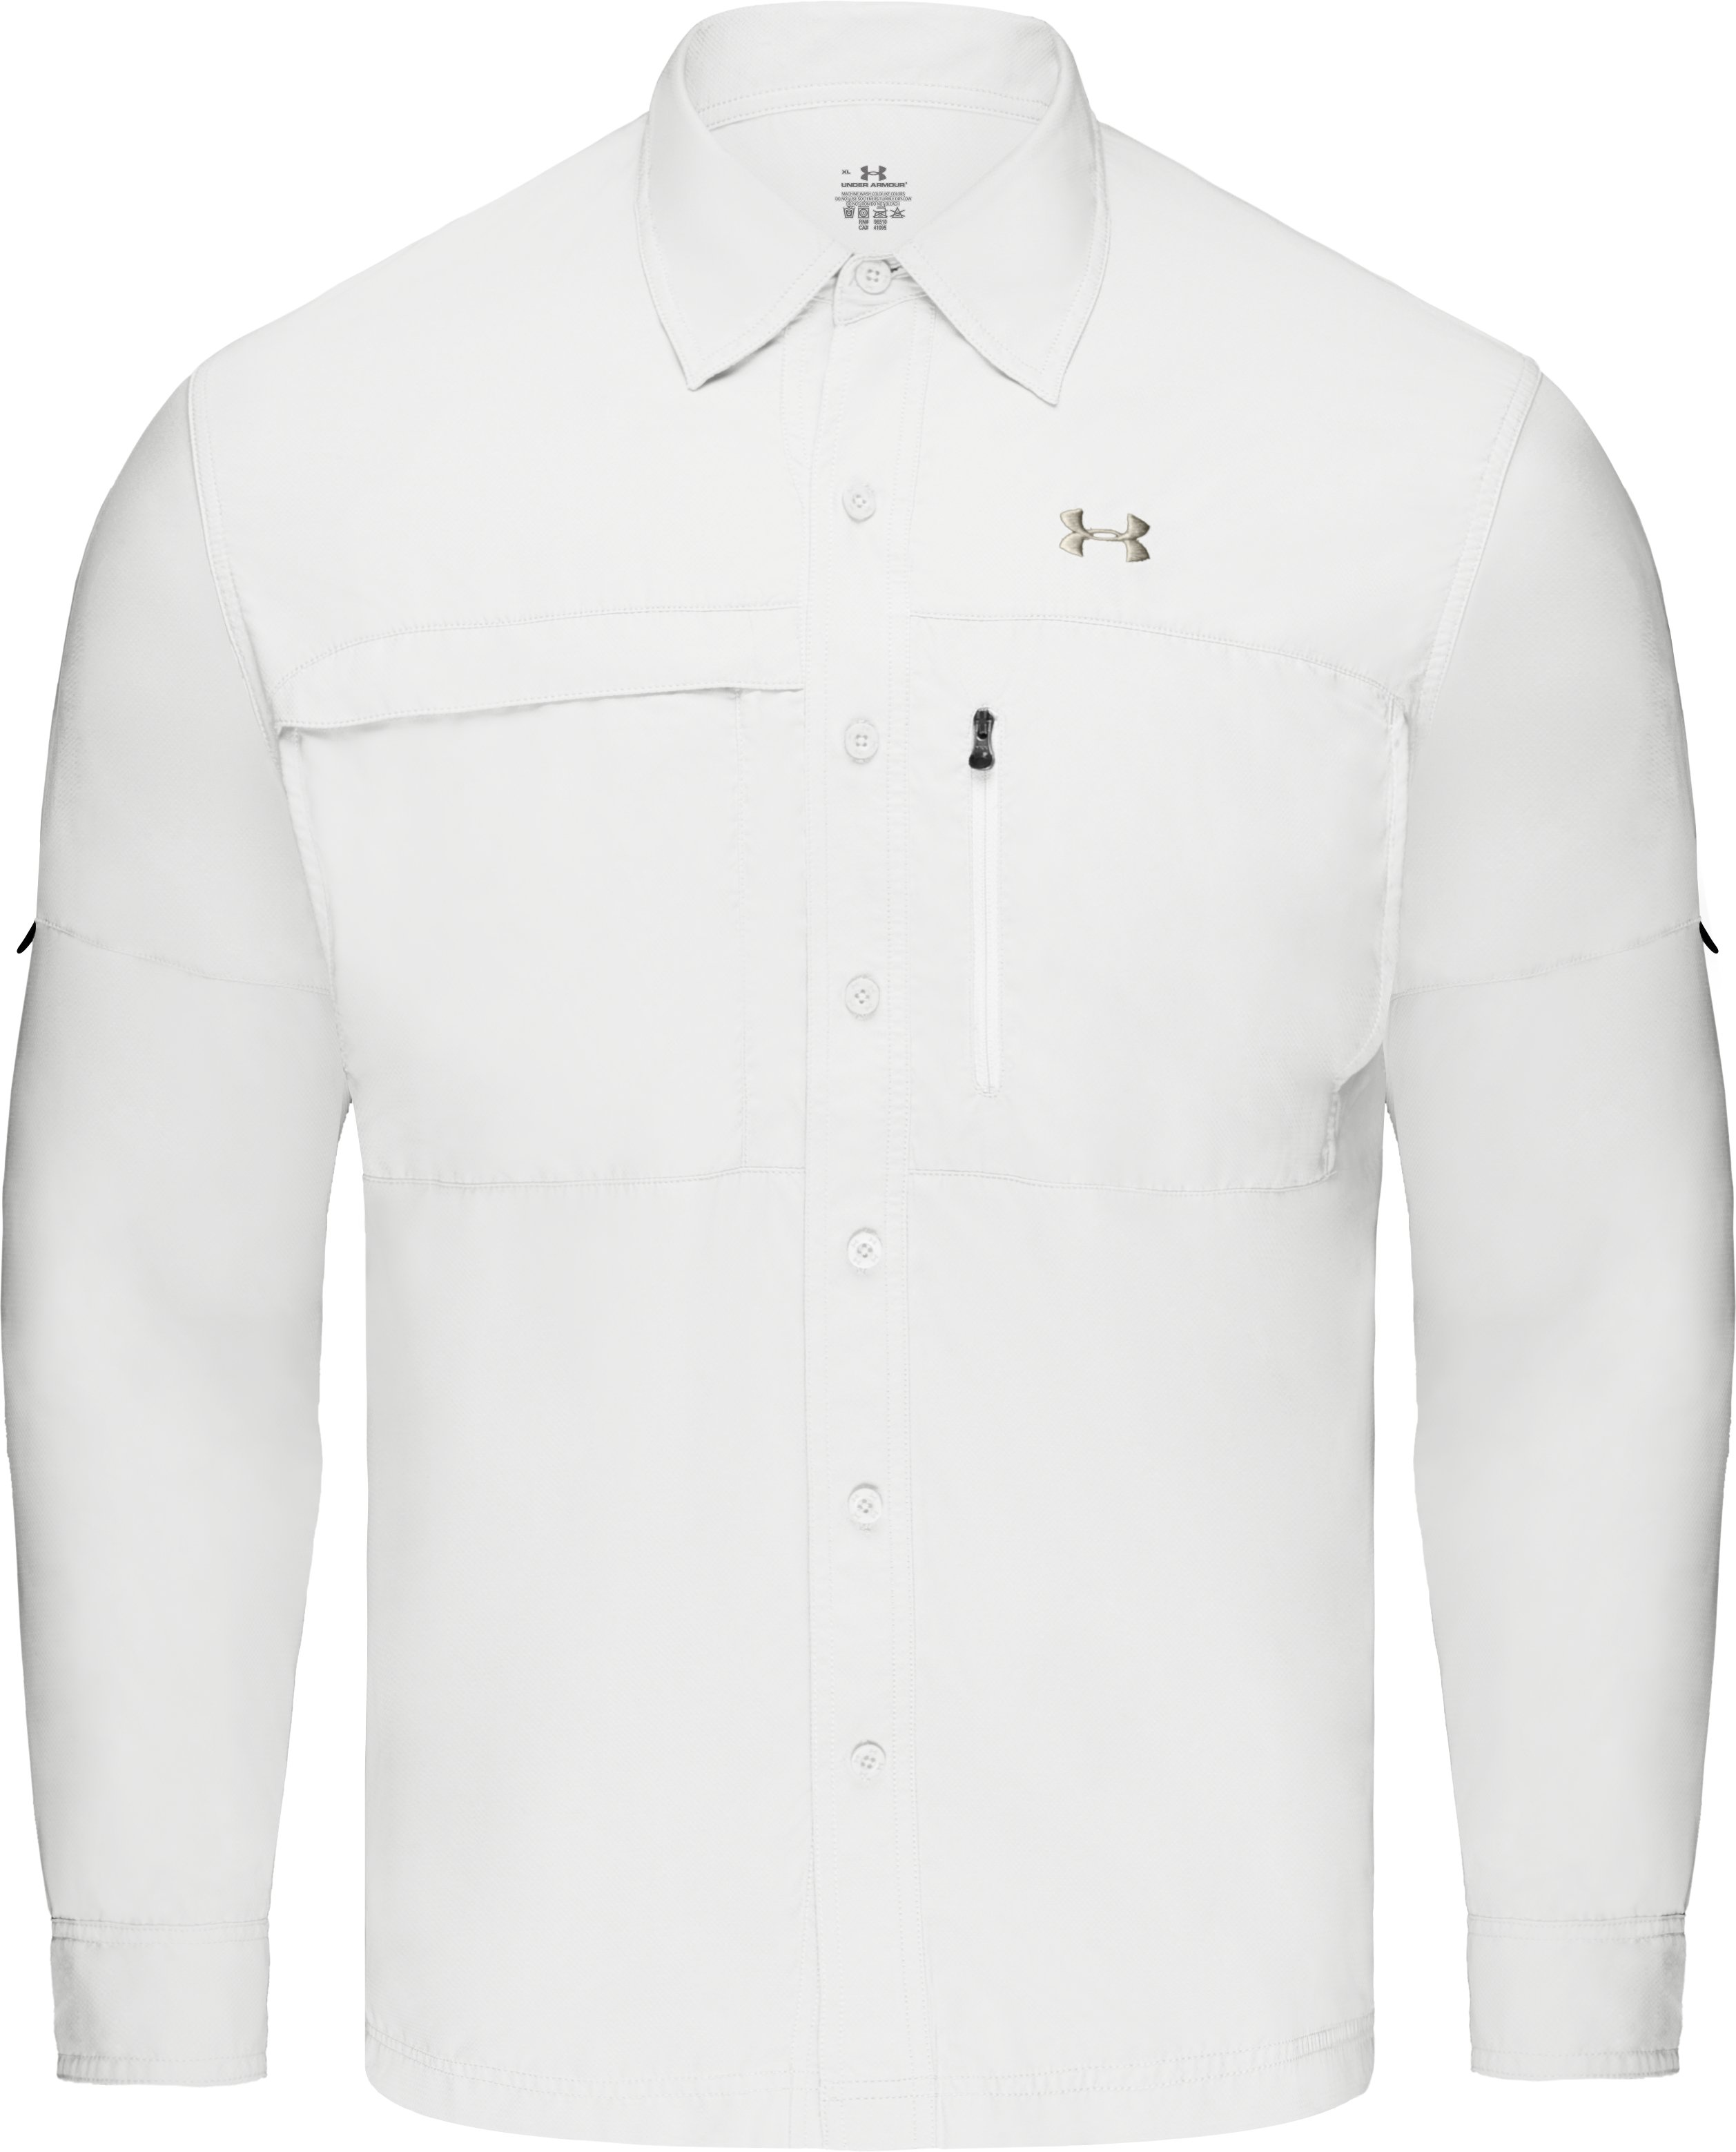 Men's Flats Guide Long Sleeve Shirt, White, undefined